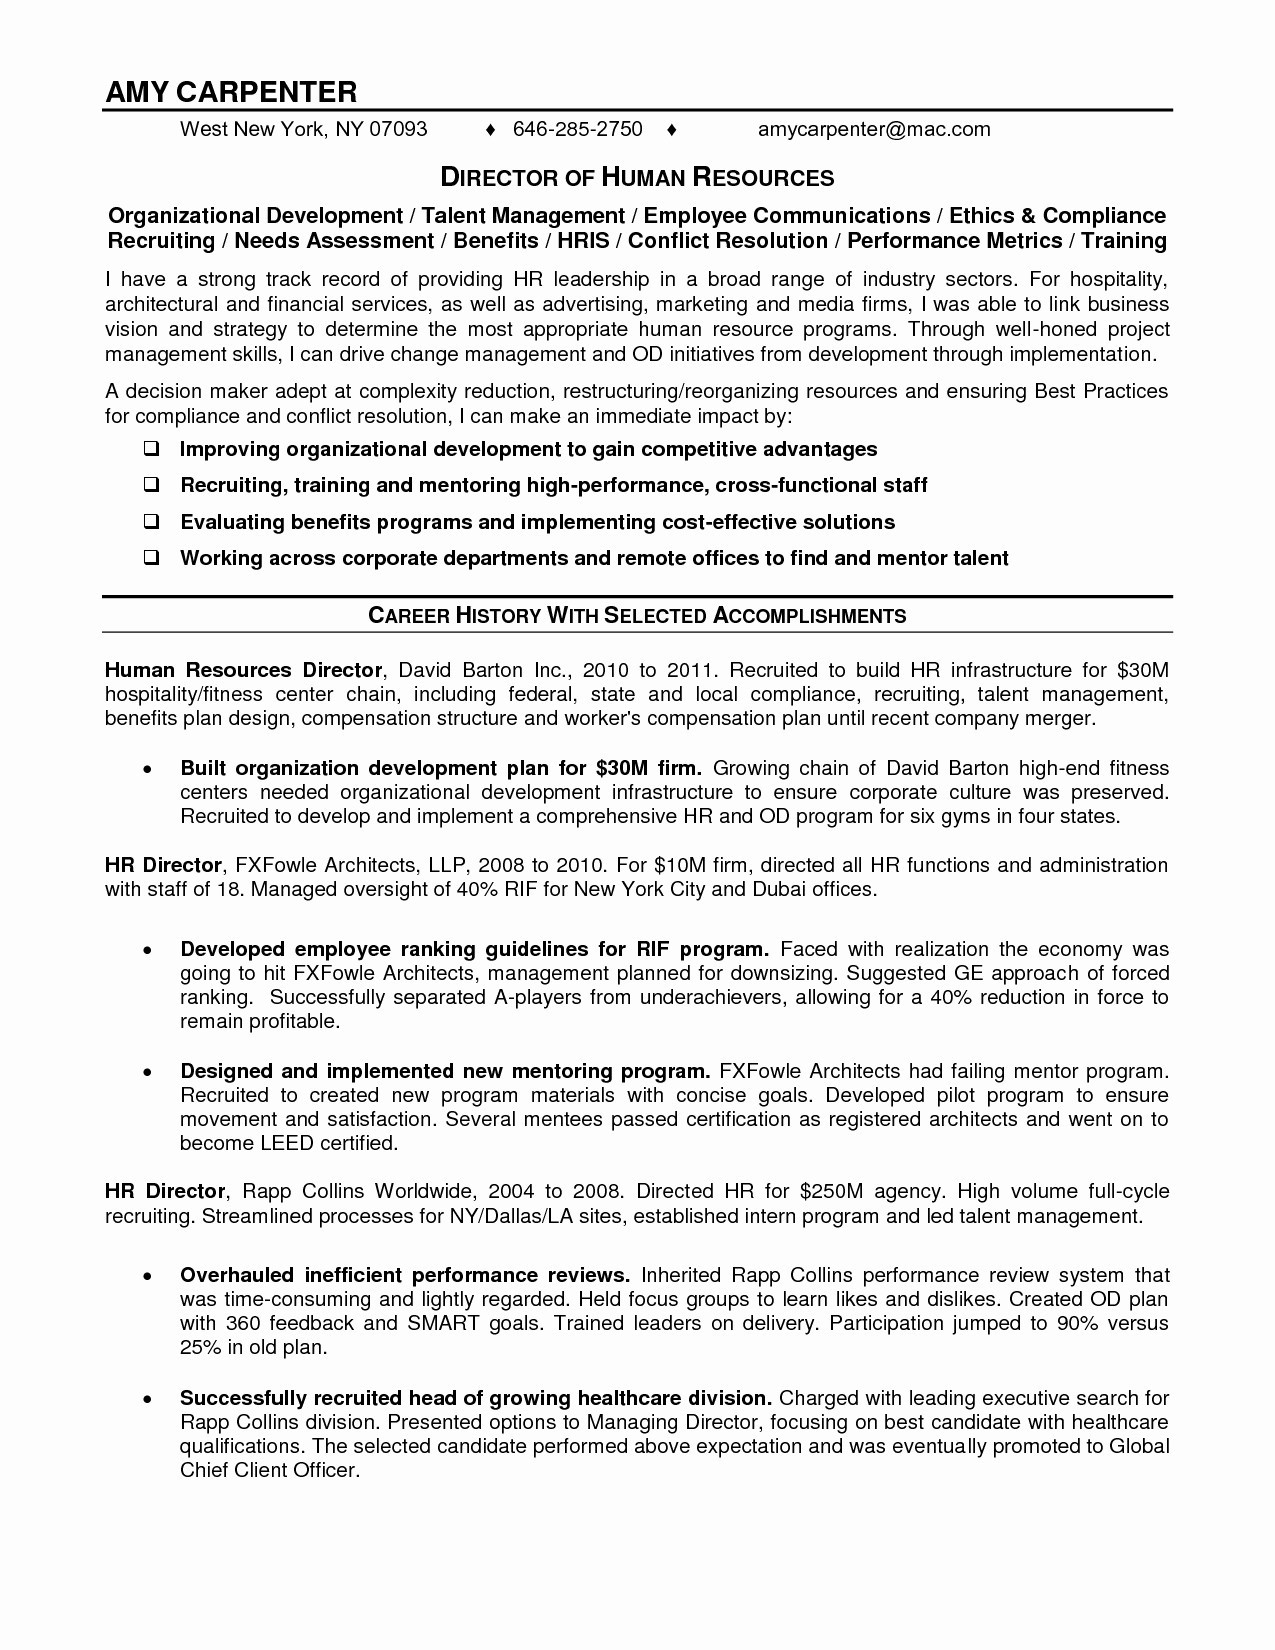 Business Termination Letter Template - Business Development Contract Template Best Contract Termination